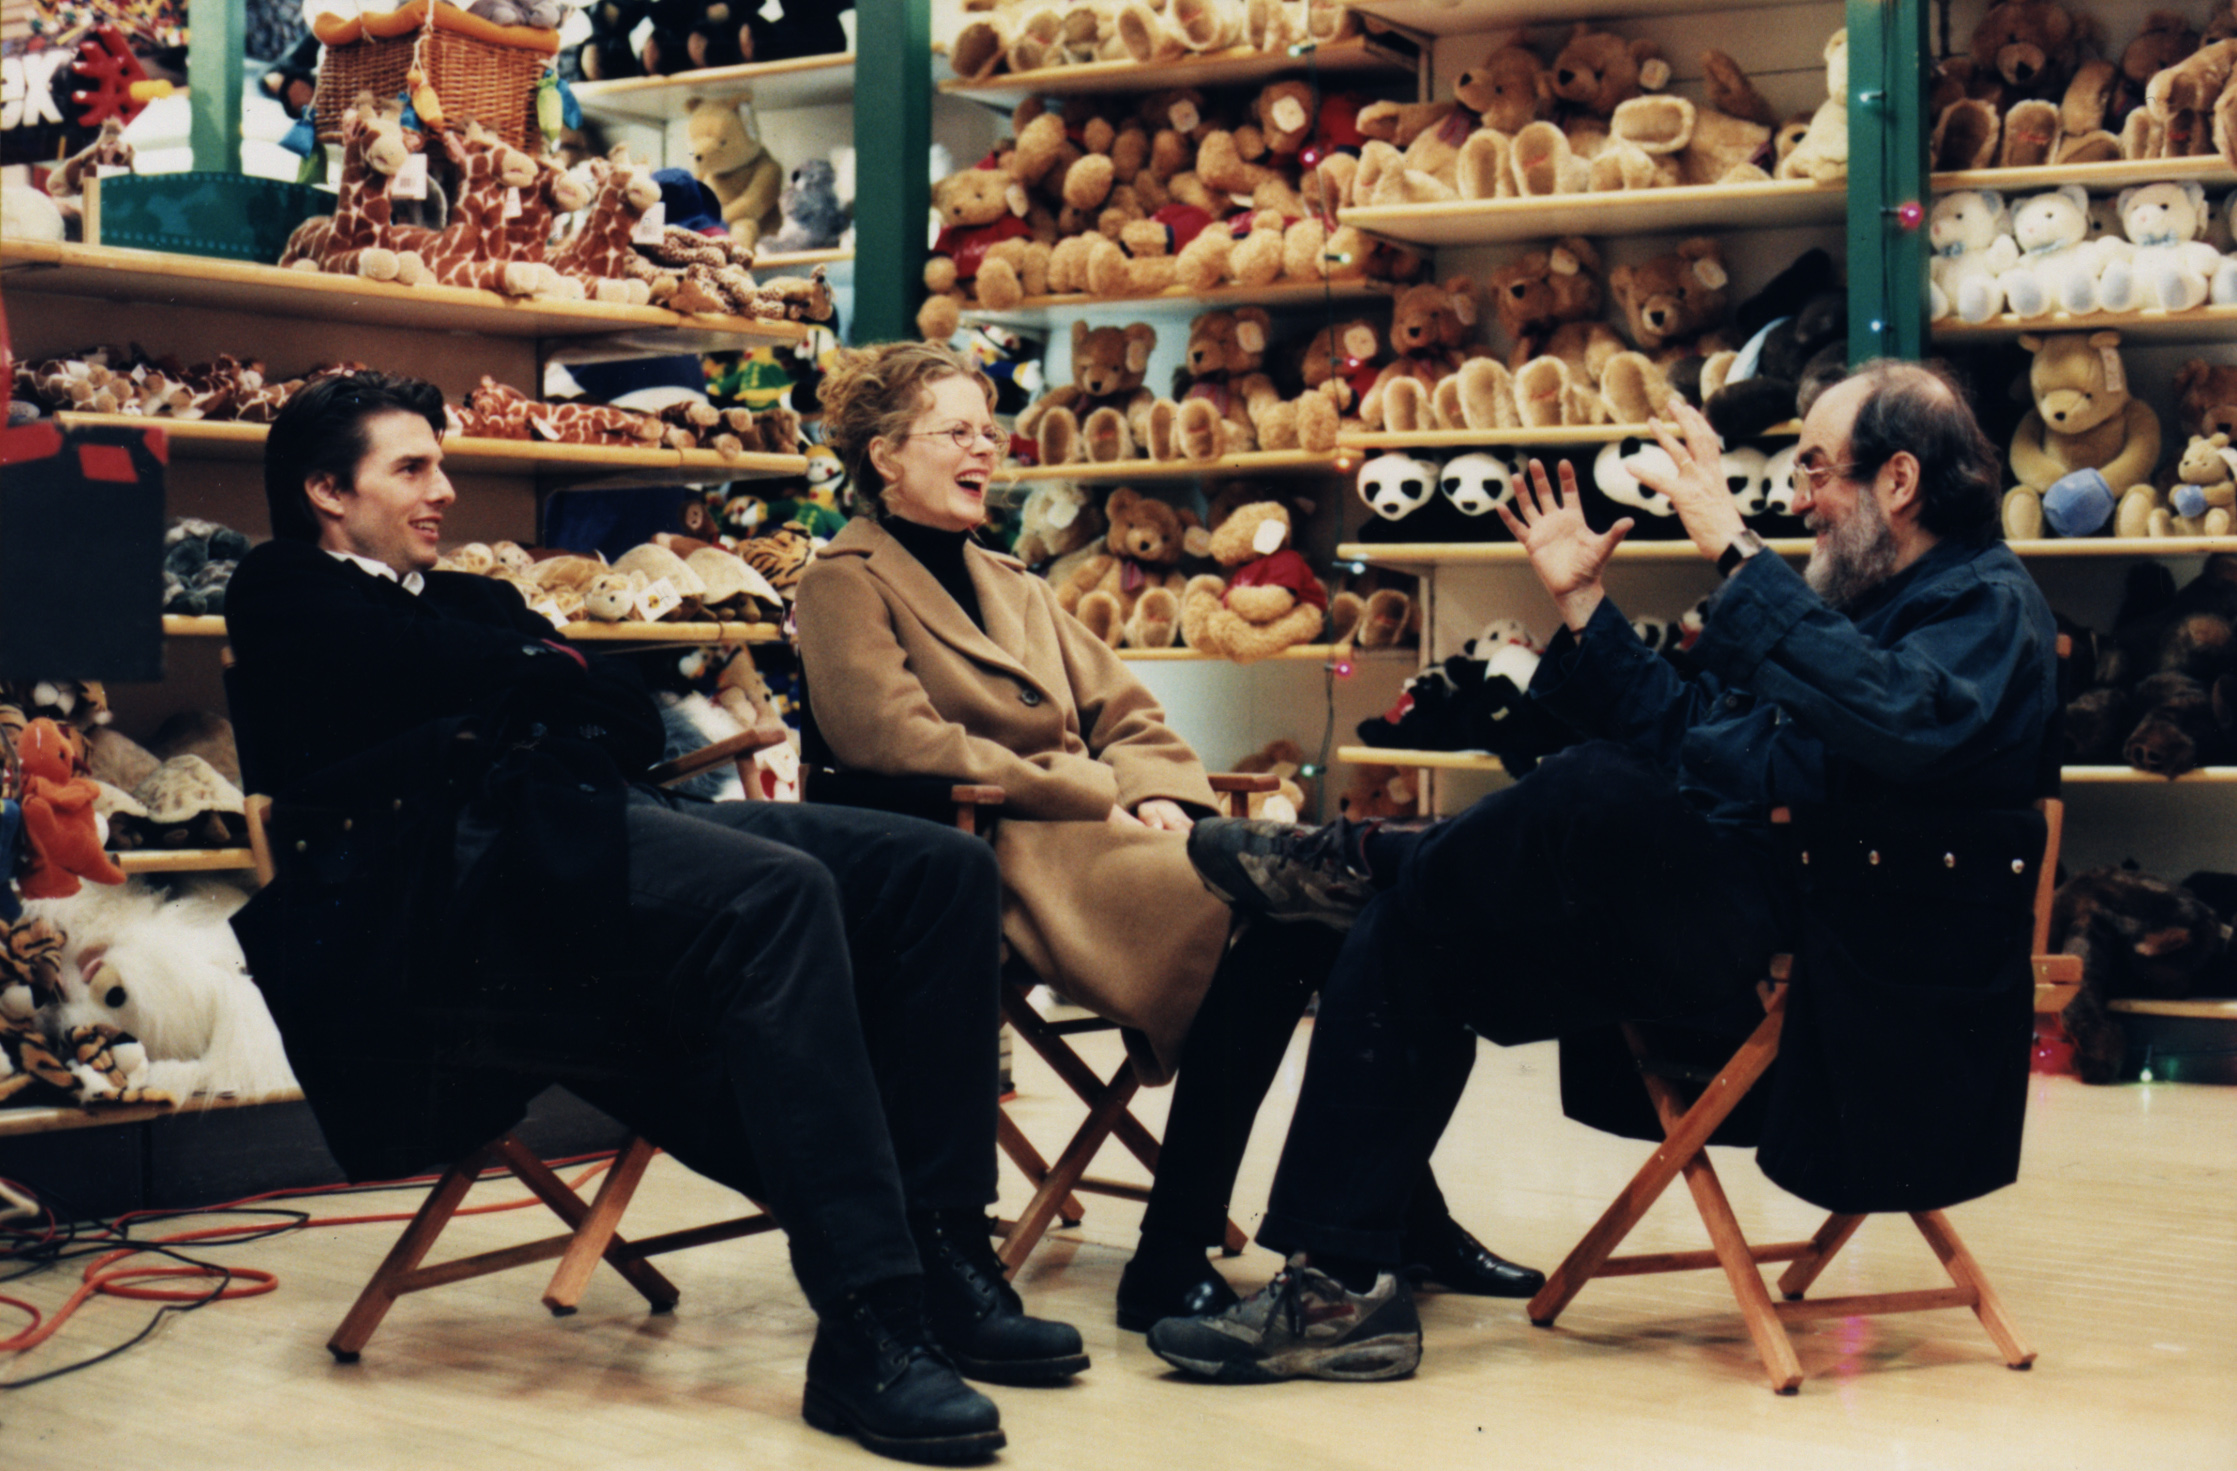 Eyes-Wide-Shut-Tom-Cruise-Nicole-Kidman-and-Stanley-Kubrick-during-a-break-in-shoot-on-the-set.jpg